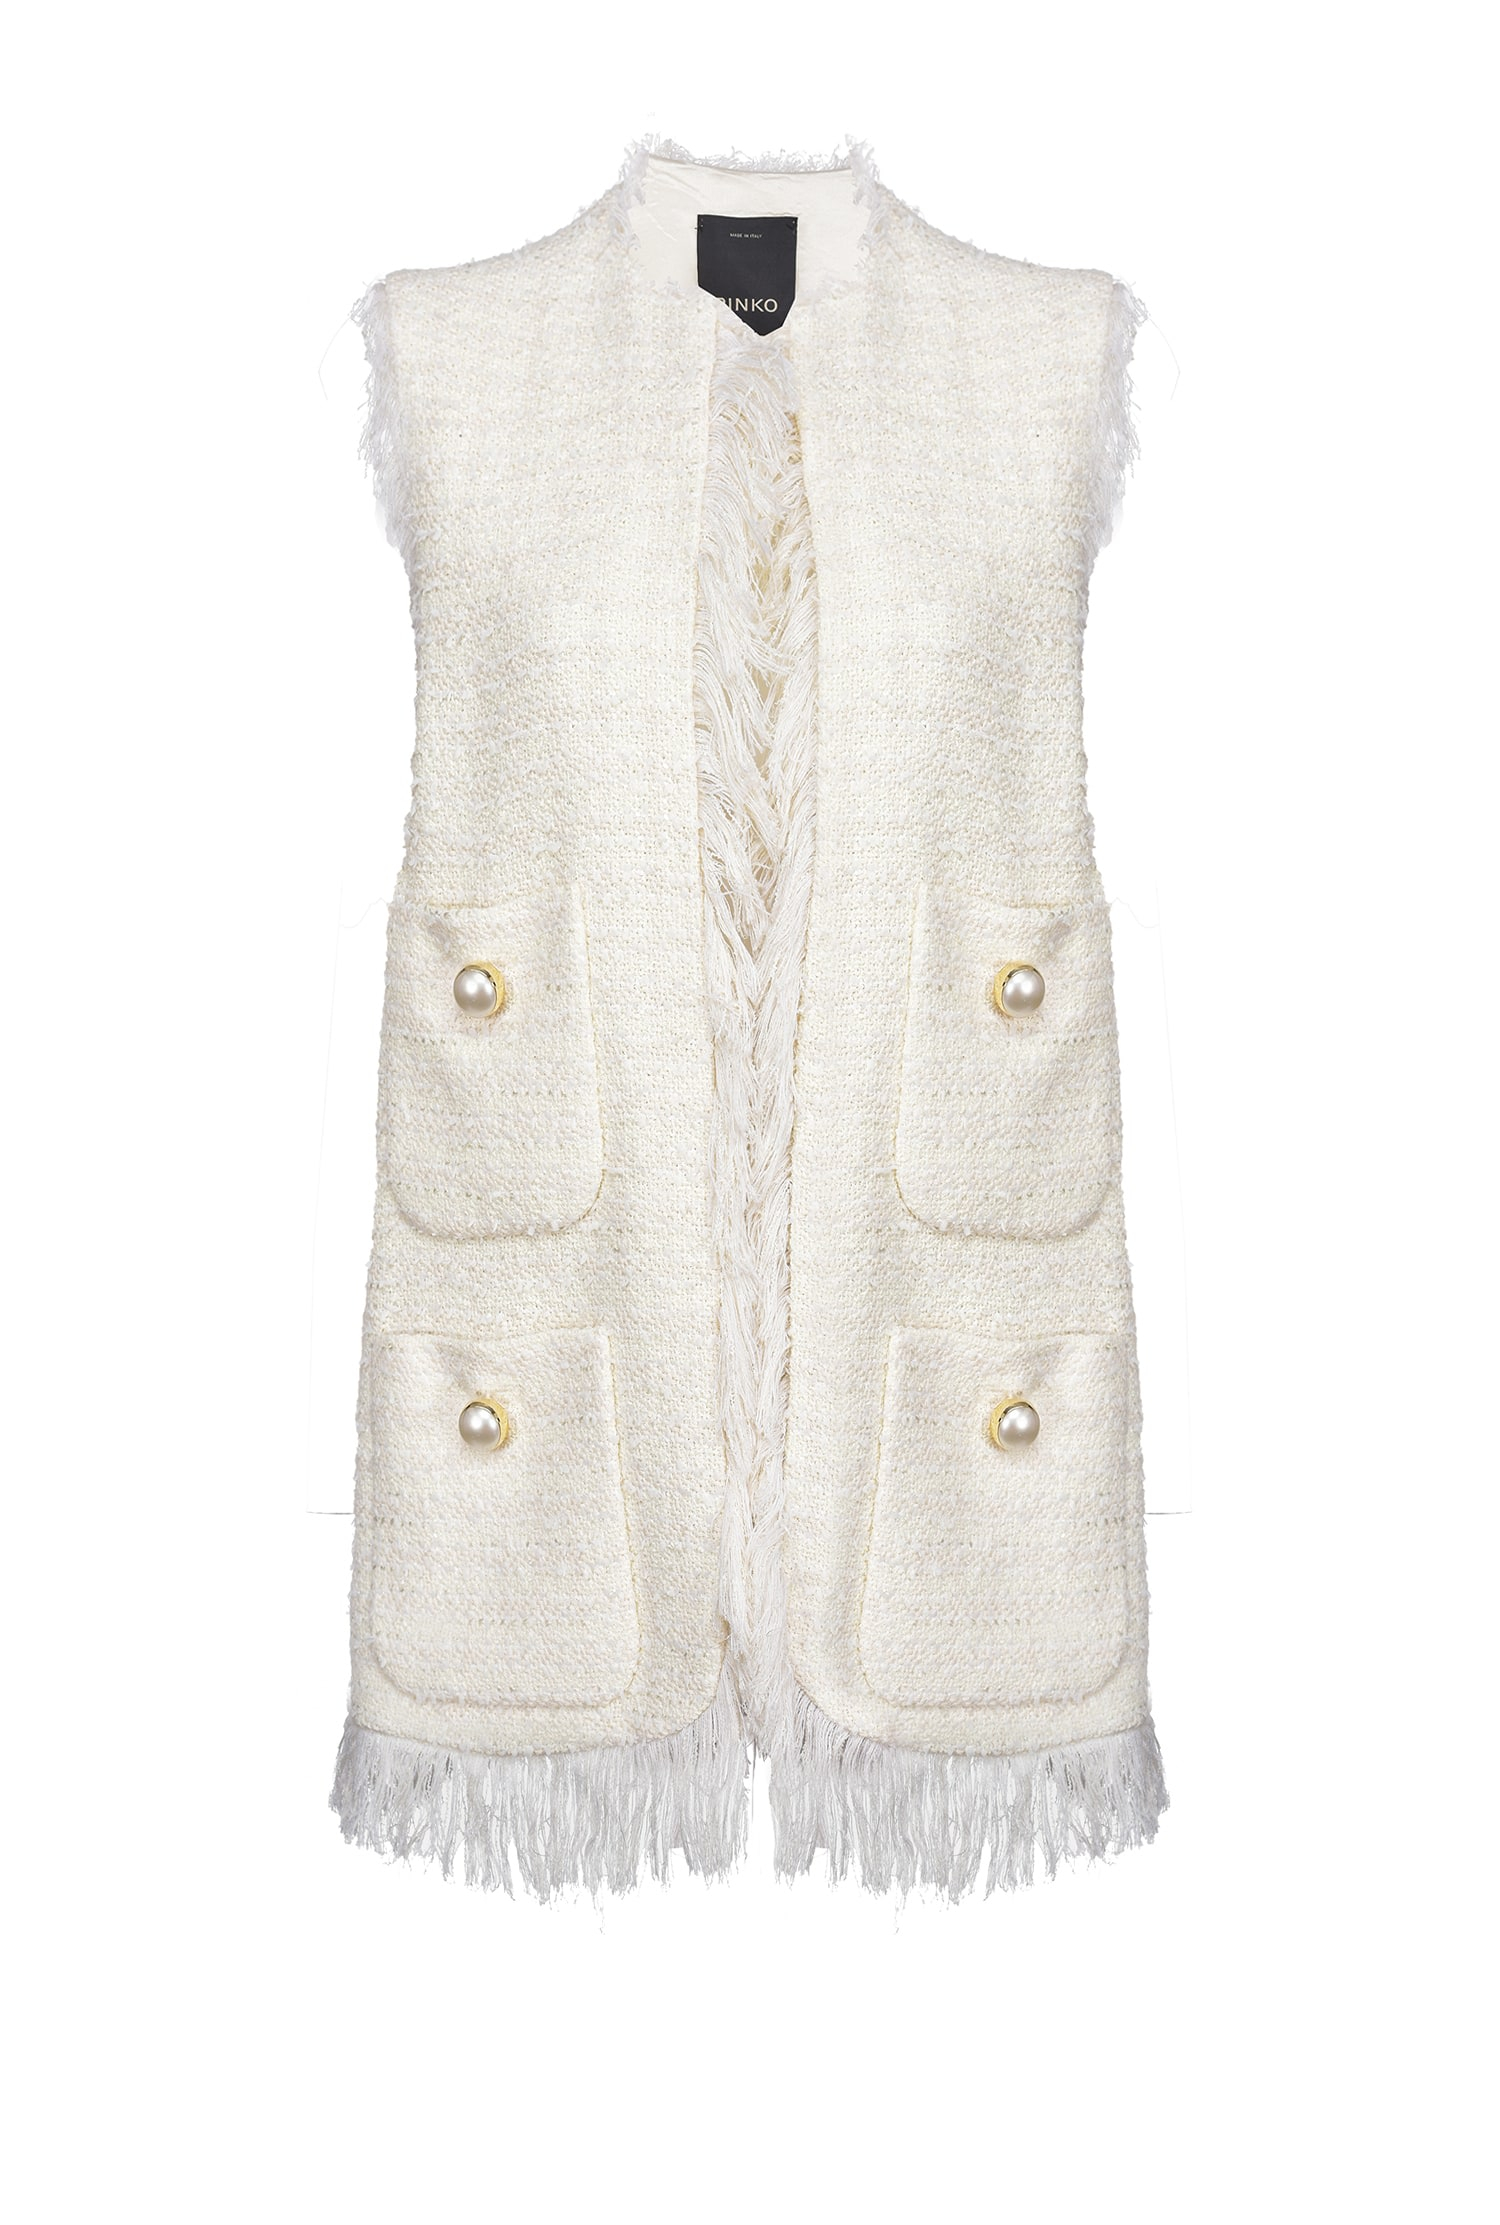 SHOPPING ON LINE PINKO GILET LUNGO IN TWEED CON FRANGE CRUDO NEW COLLECTION WOMEN'S SPRING SUMMER 2021